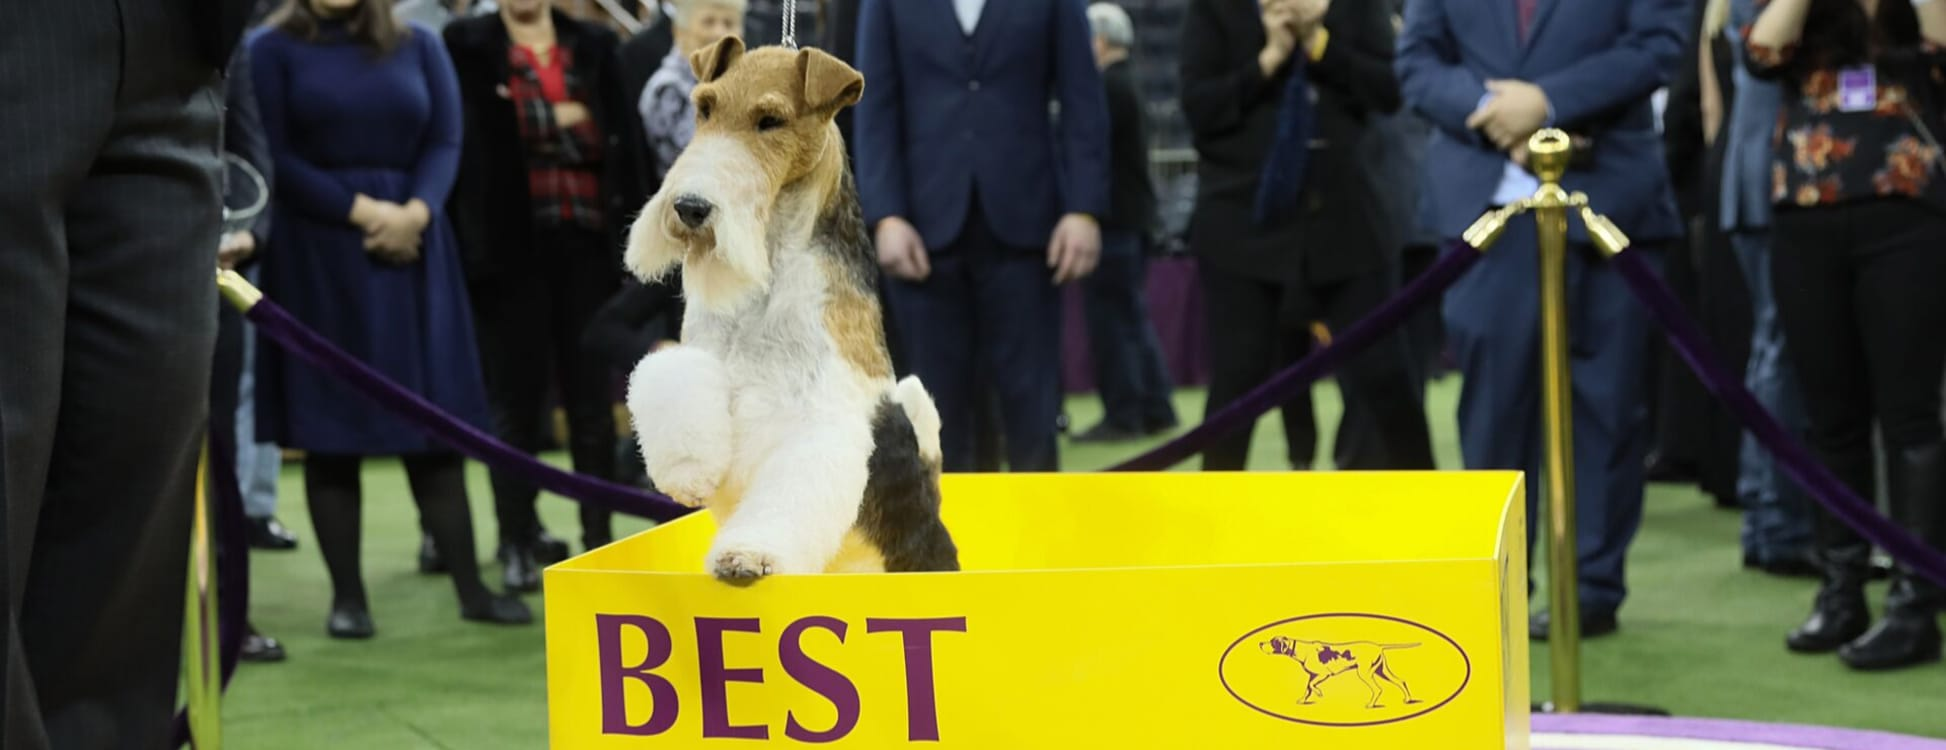 Watch Westminster Dog Show 2020.Homepage